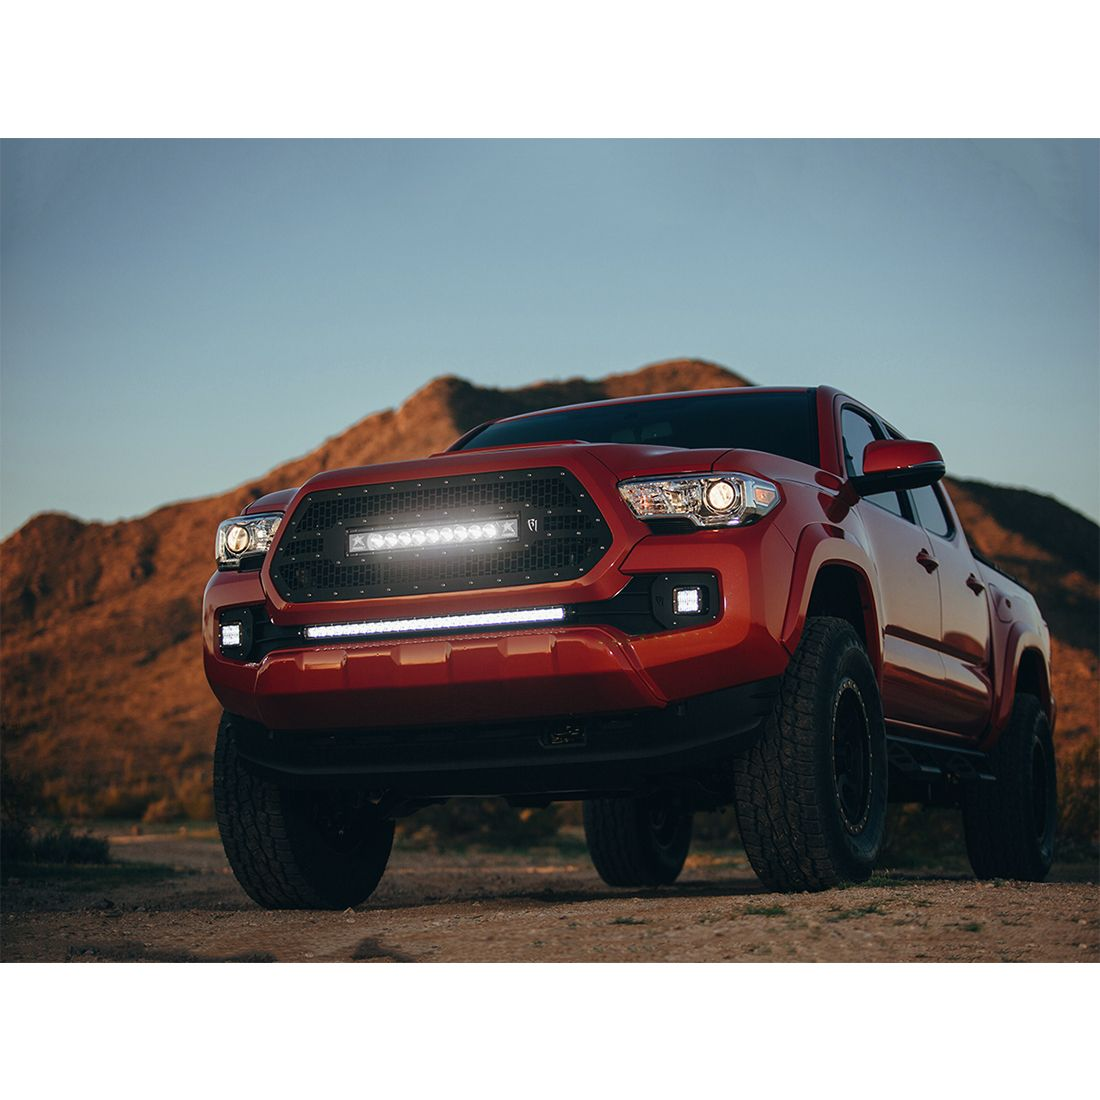 Rigid Industries Tacoma For Mount Kit SAE Compliant D-Series Pair 2016-2017